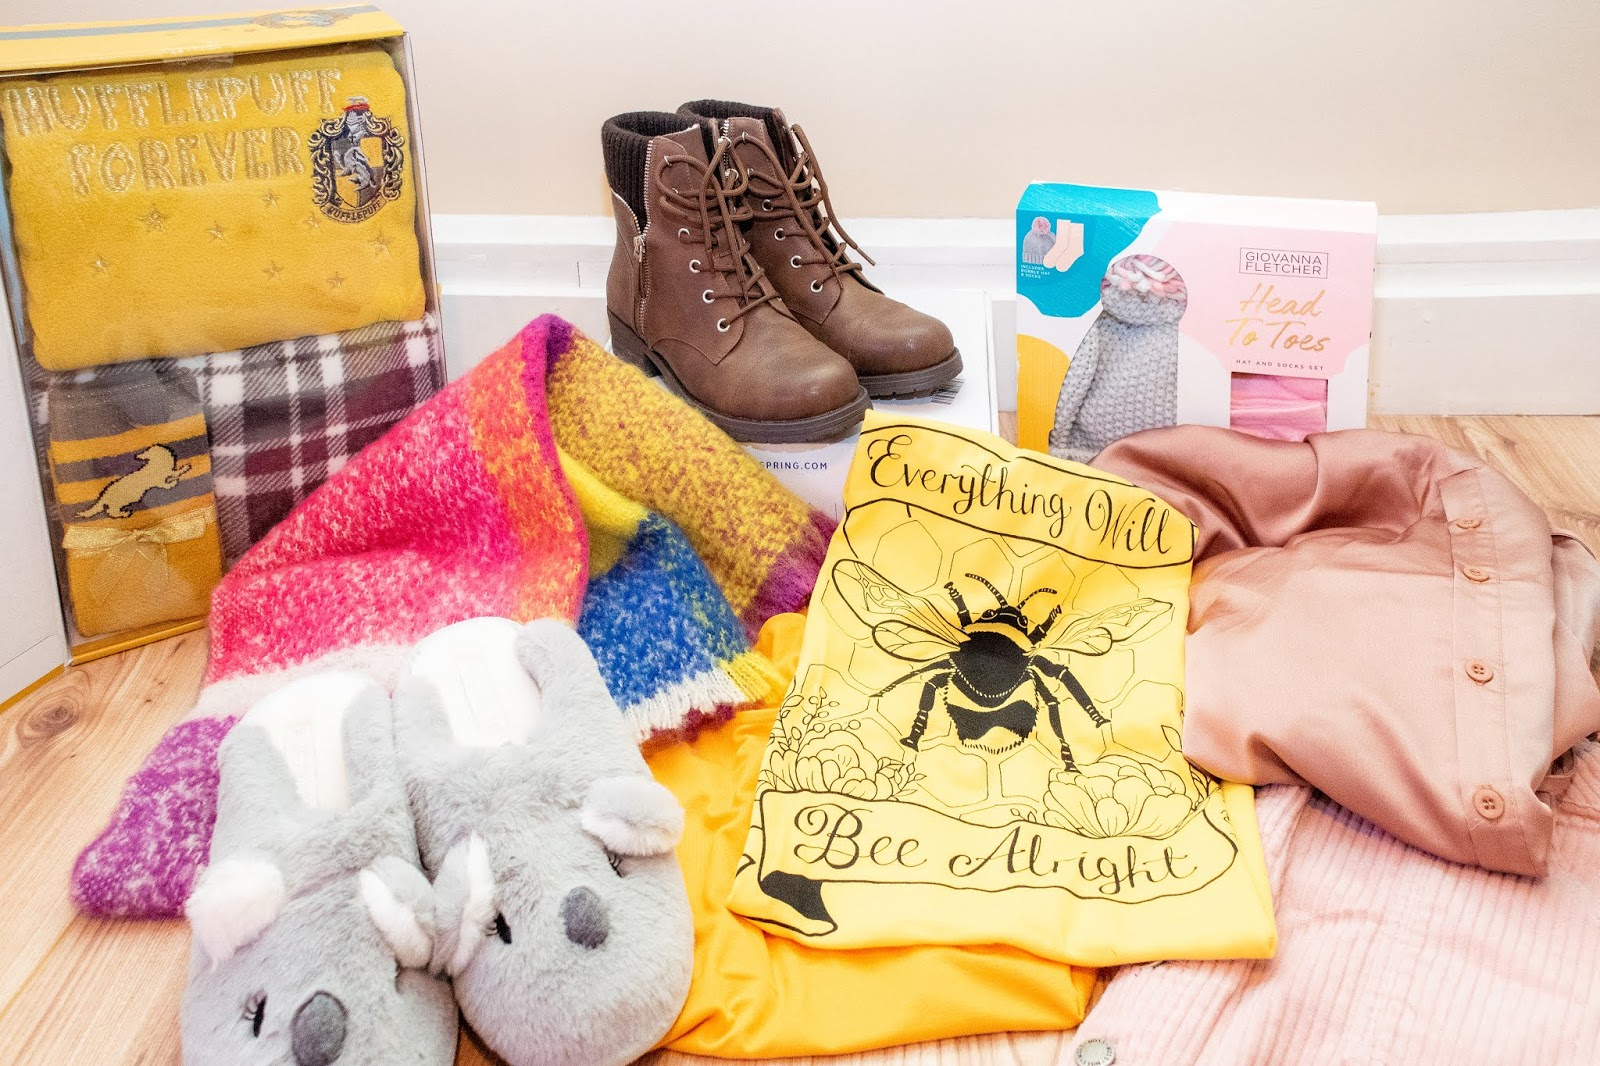 Clothing gifts gathered together: hufflepuff pyjamas, brown boots, colourful scarf, koala slippers, yellow t-shirts, pink skirt, pink silk jumpsuit.